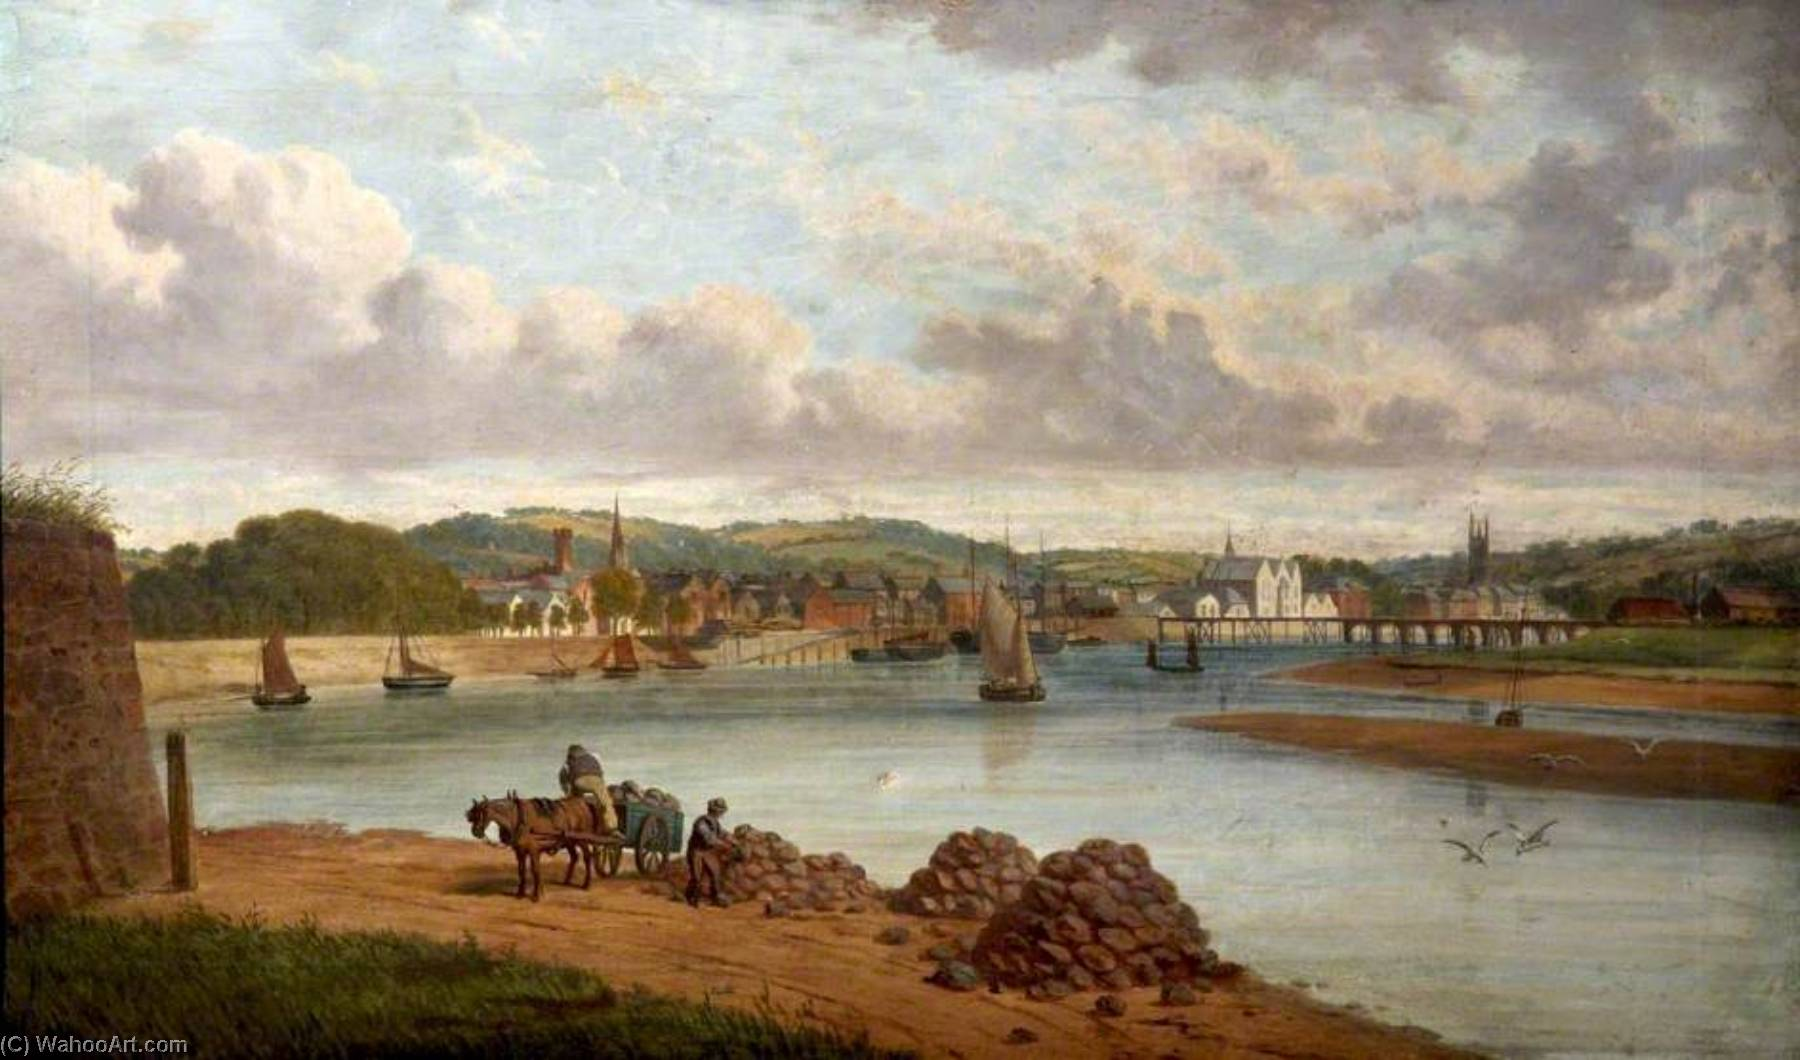 The Construction of the Railway Bridge at Pottington, Devon, 1886 by Joseph Kennedy | Oil Painting | WahooArt.com